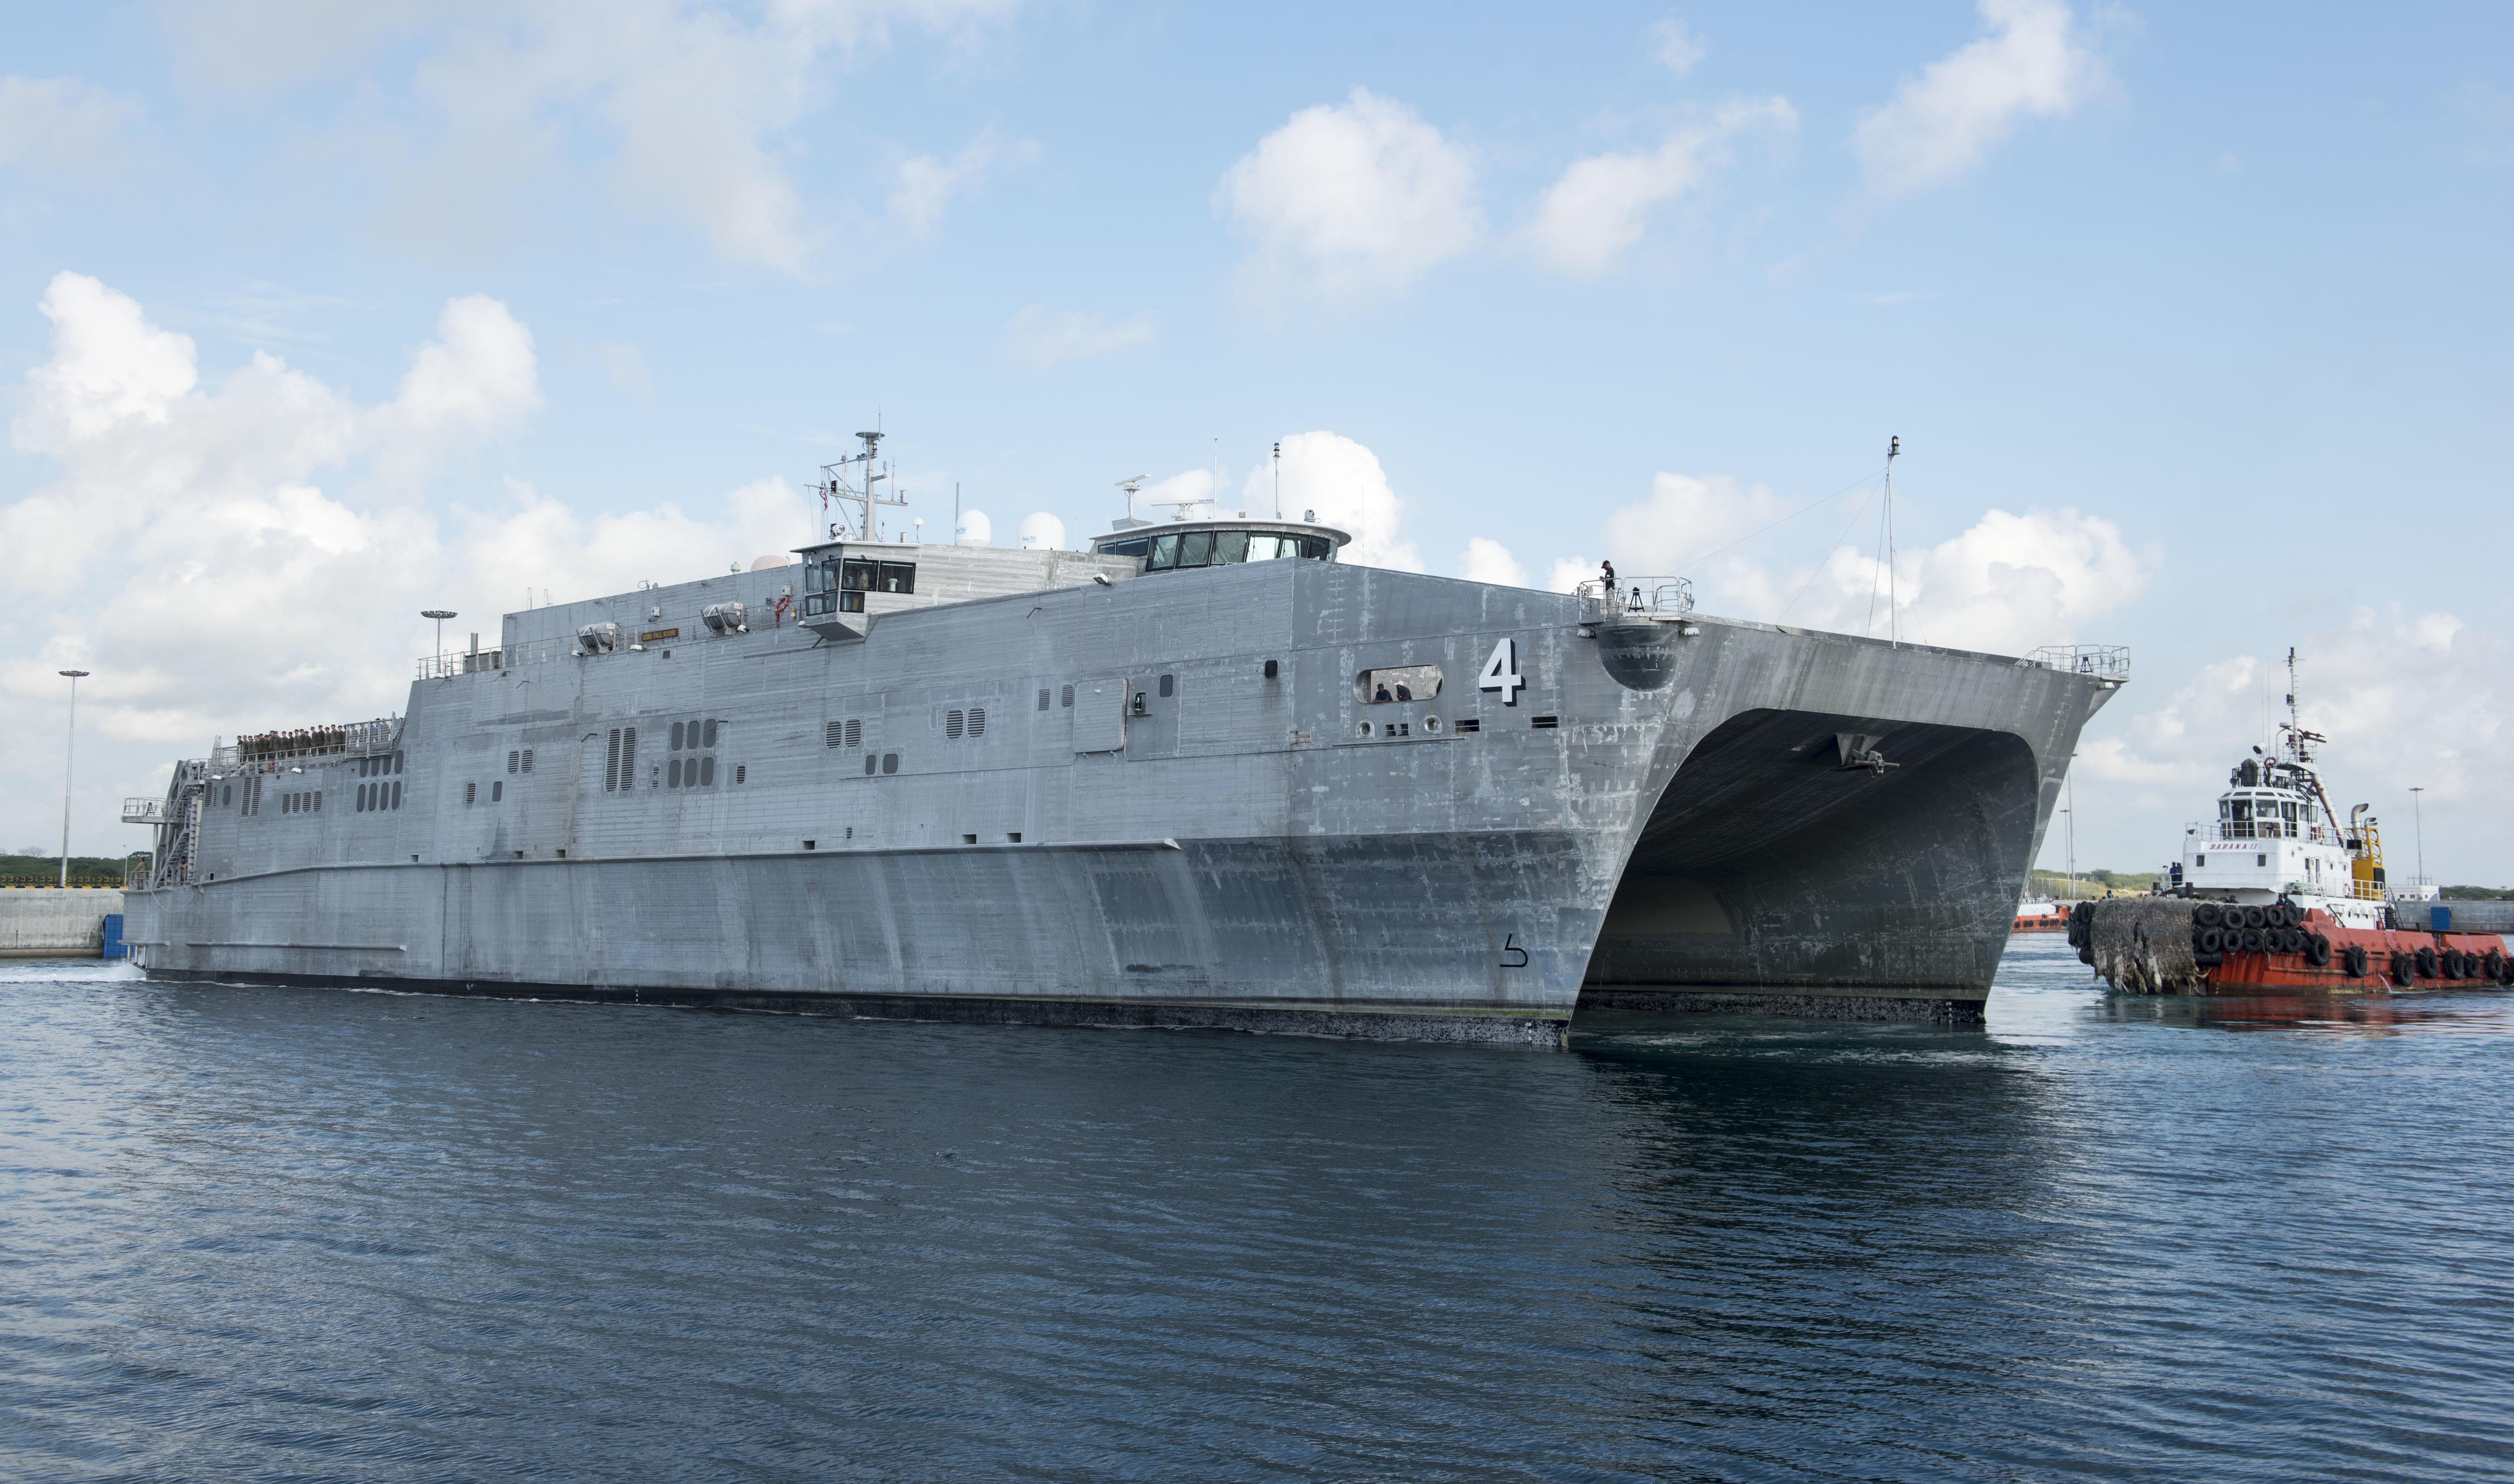 U.S. expeditionary fast transport ship makes goodwill visit to Myanmar